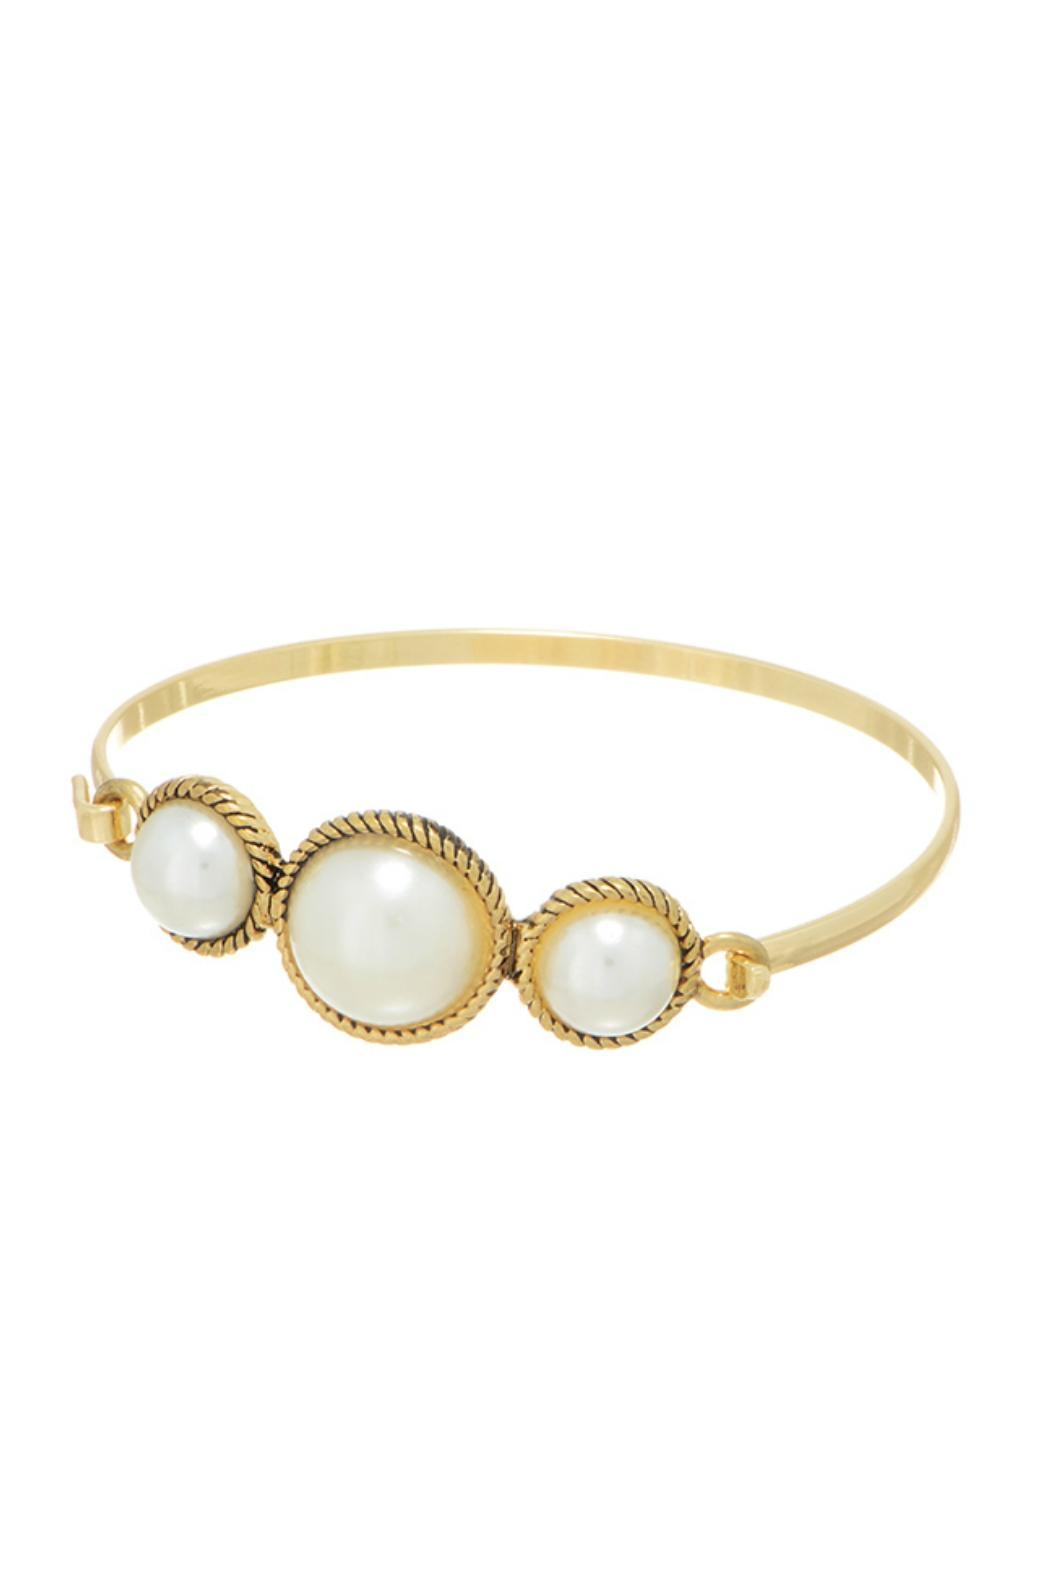 Mimi's Gift Gallery Triple Pearl Bangle - Main Image